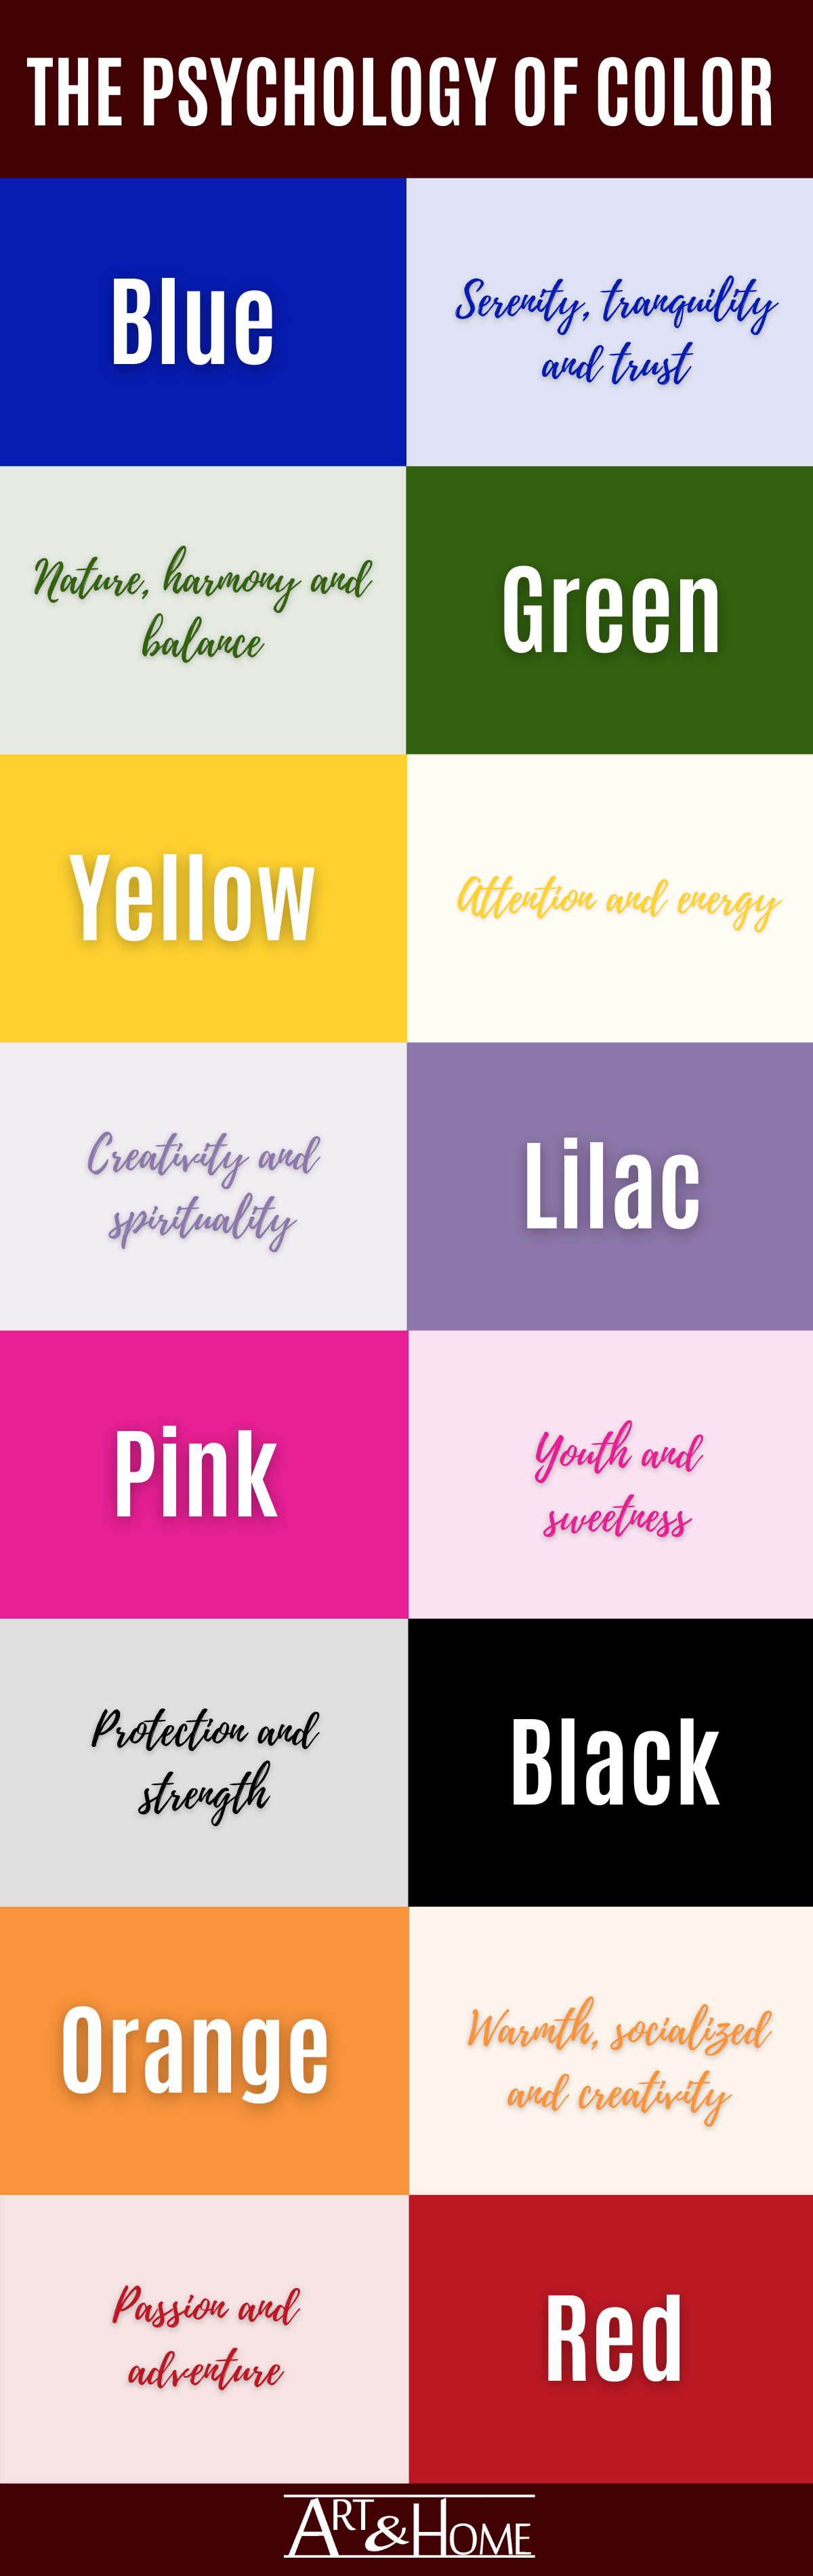 Psychology Meanings of Color